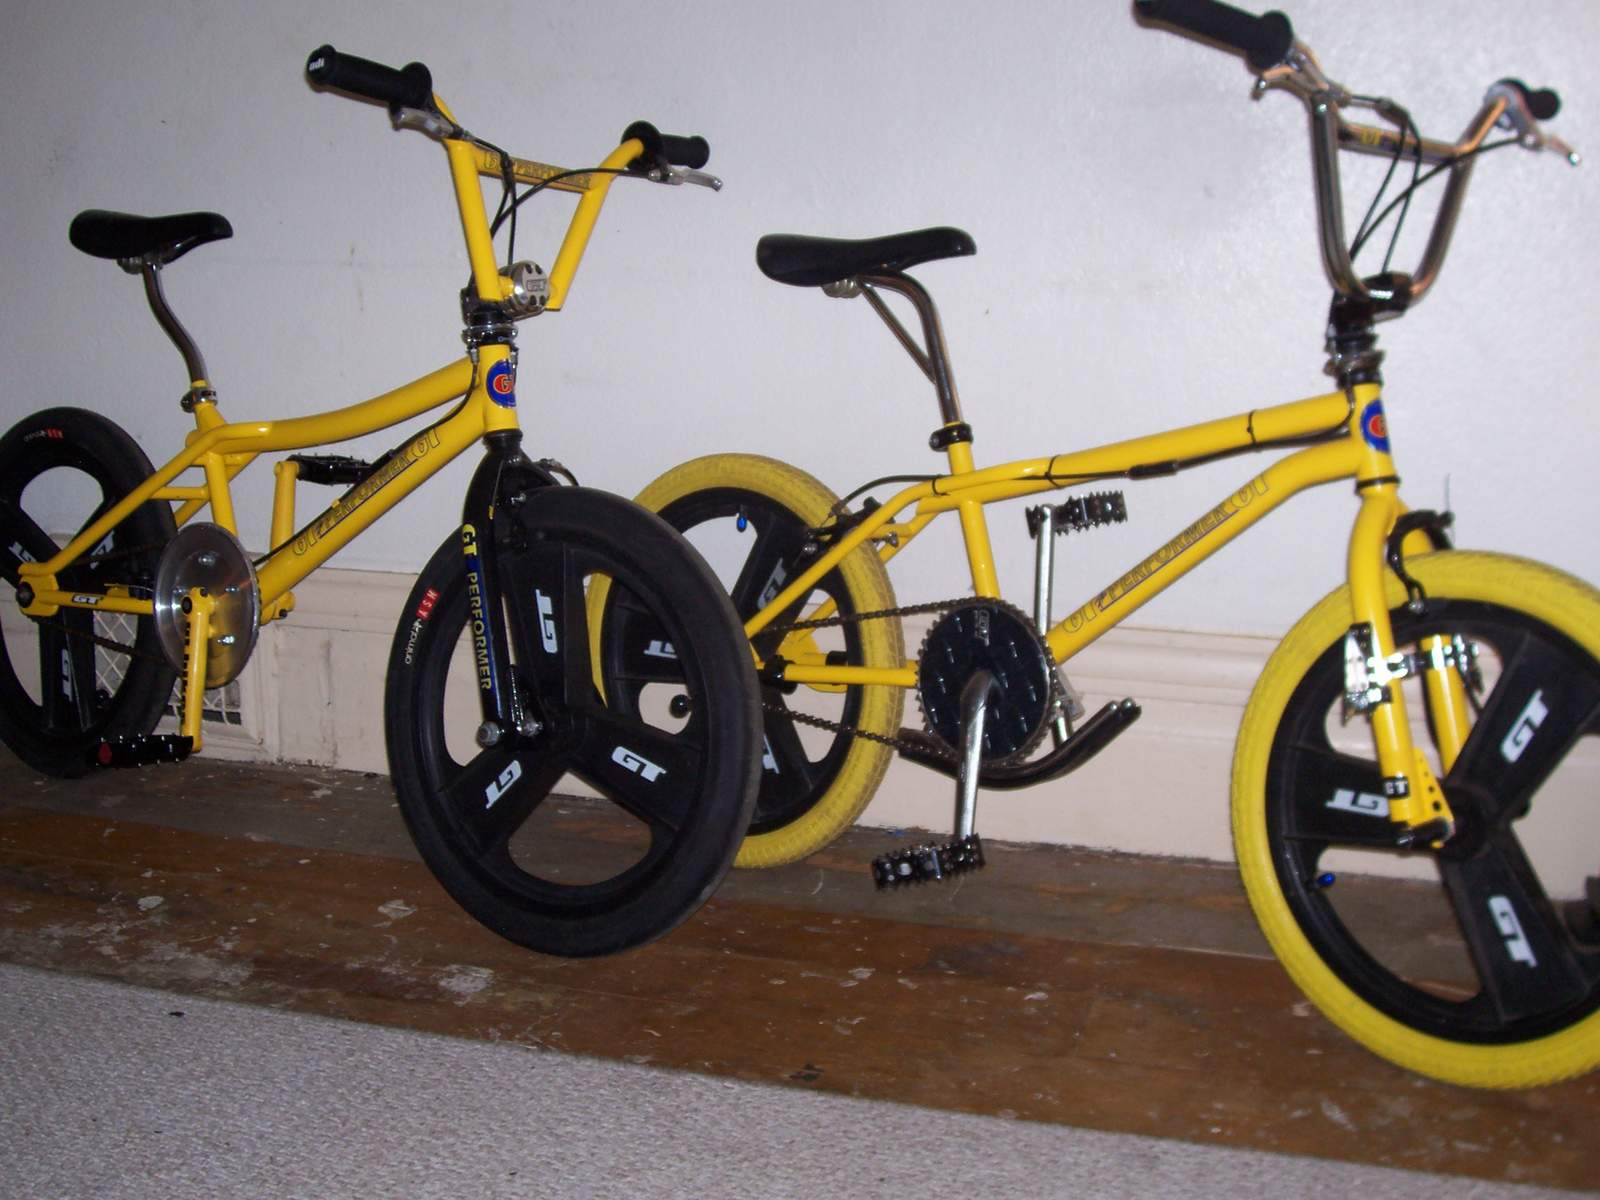 https://s3.amazonaws.com/uploads.bmxmuseum.com/user-images/61851/100_61255812f13567.jpg